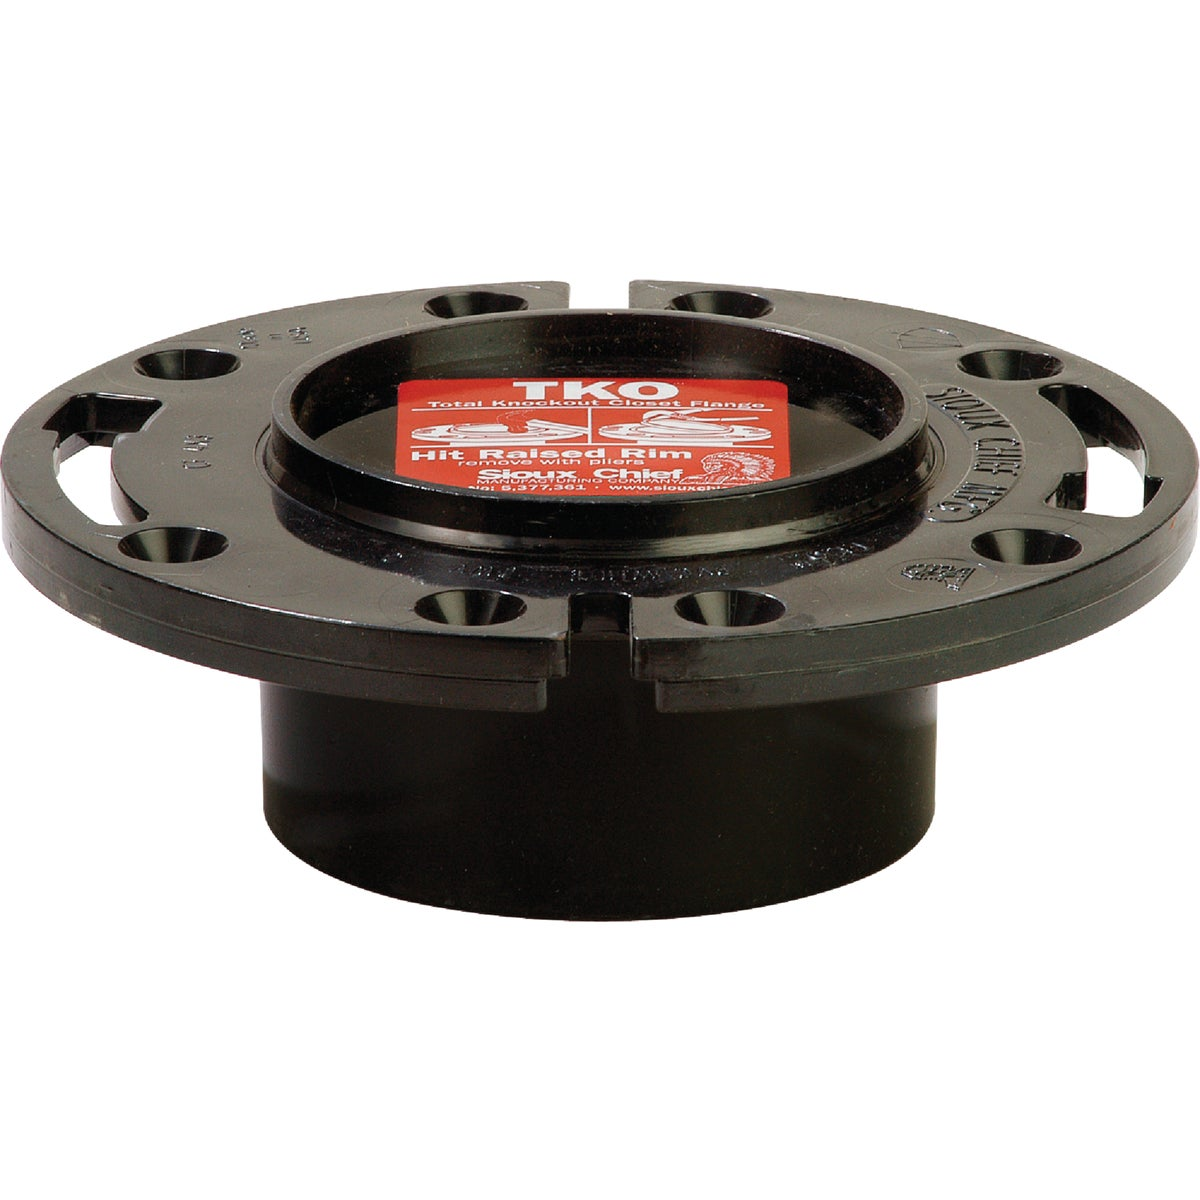 4X3 K/O ABS CLOST FLANGE - 883-AT by Sioux Chief Mfg